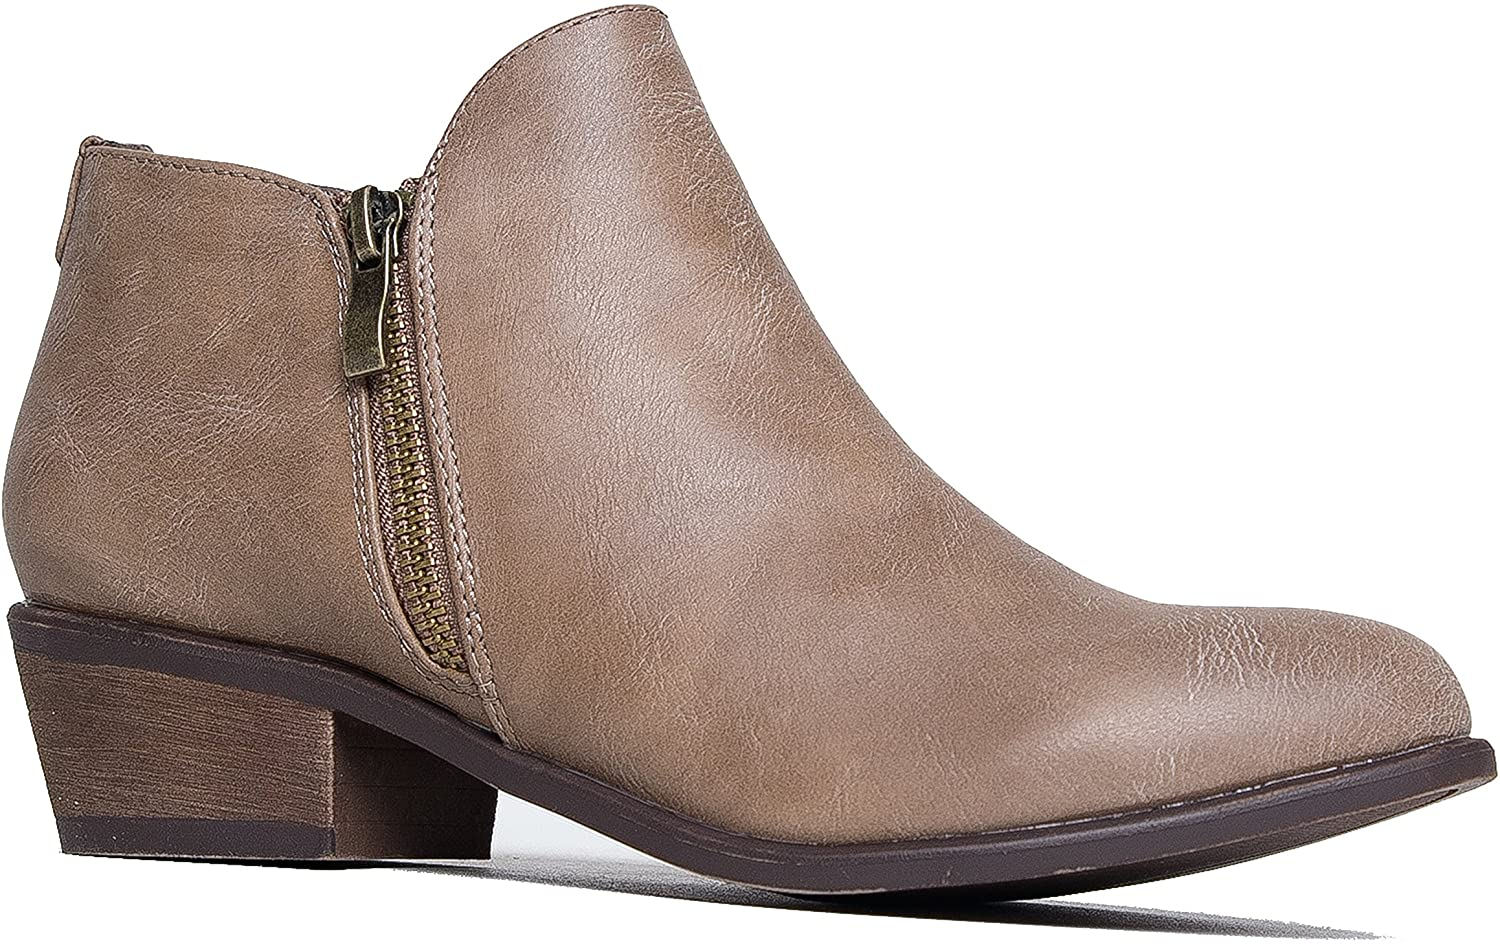 J. Adams Jed Ankle Bootie - Western Low Stacked Heel Pointed Toe Zippered Boot